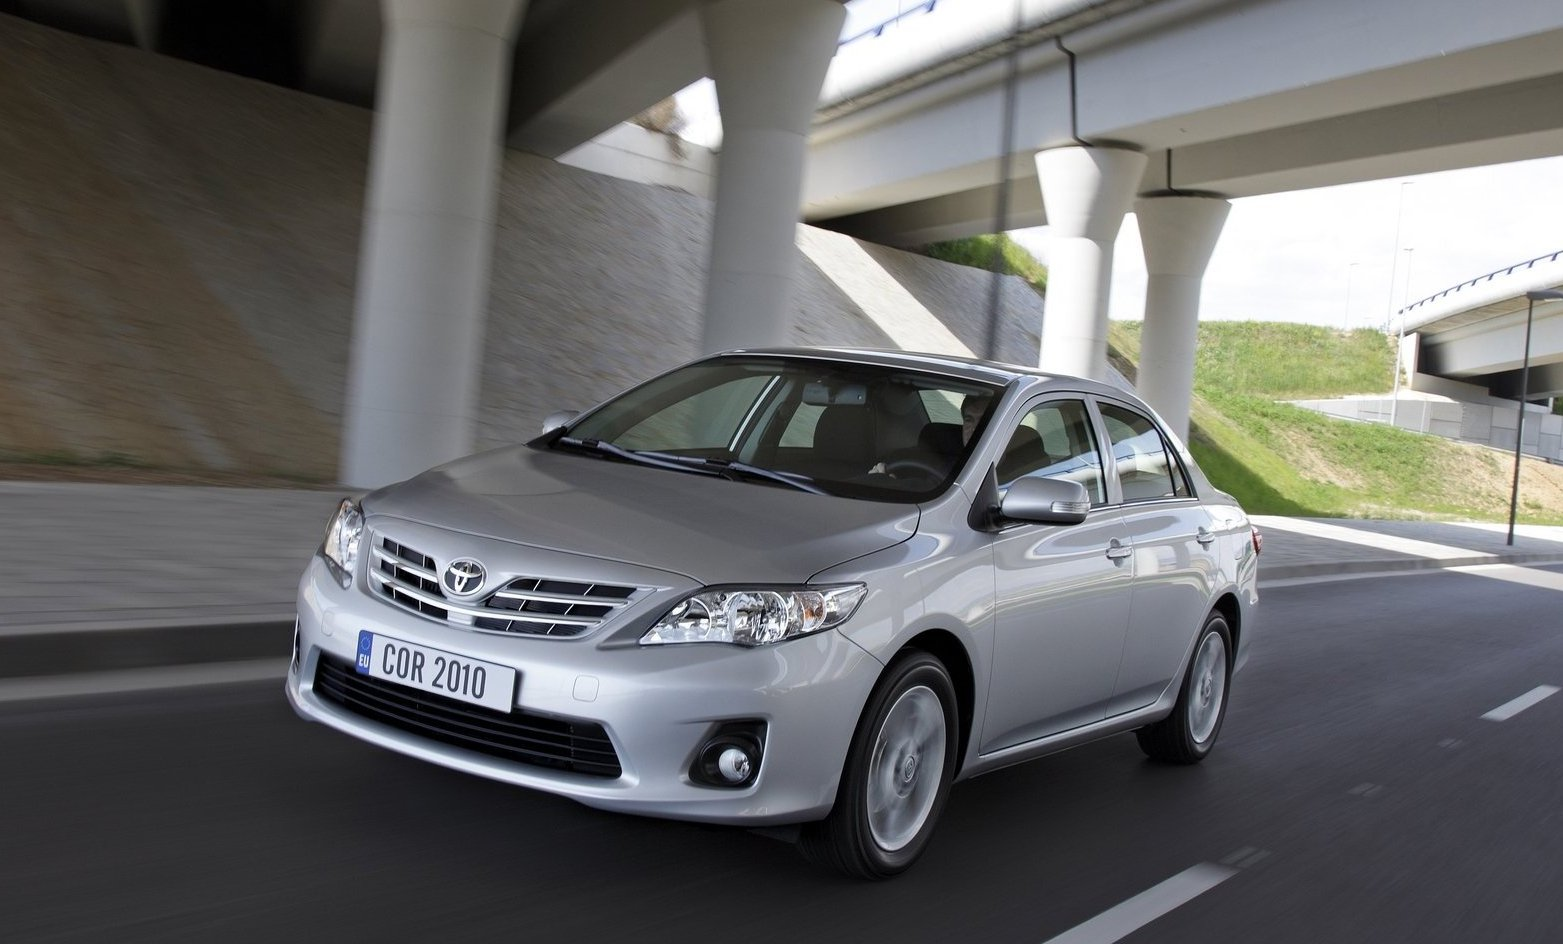 2011 toyota corolla 02 2011 Toyota Corolla   Reviews, Price, Photos, Specifications